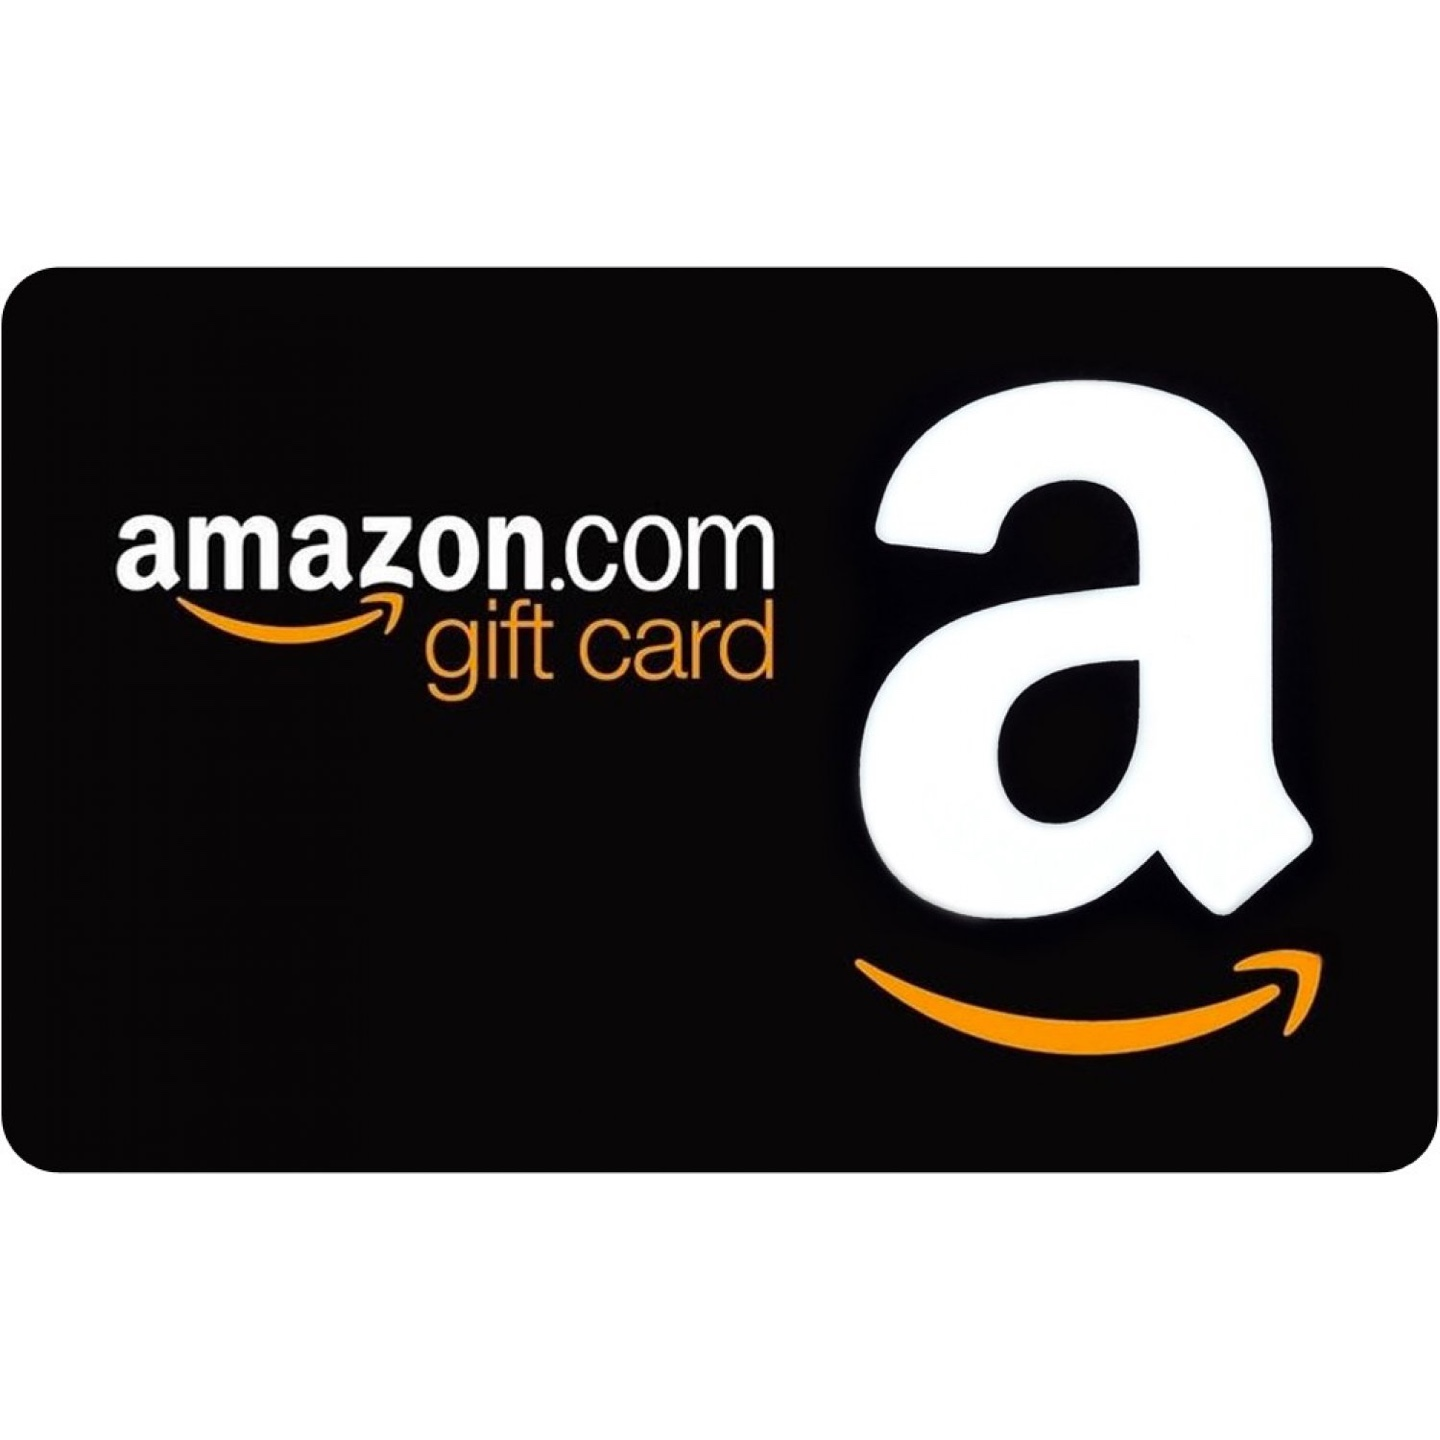 amazon-gift-card-us-20-473915.2.jpg